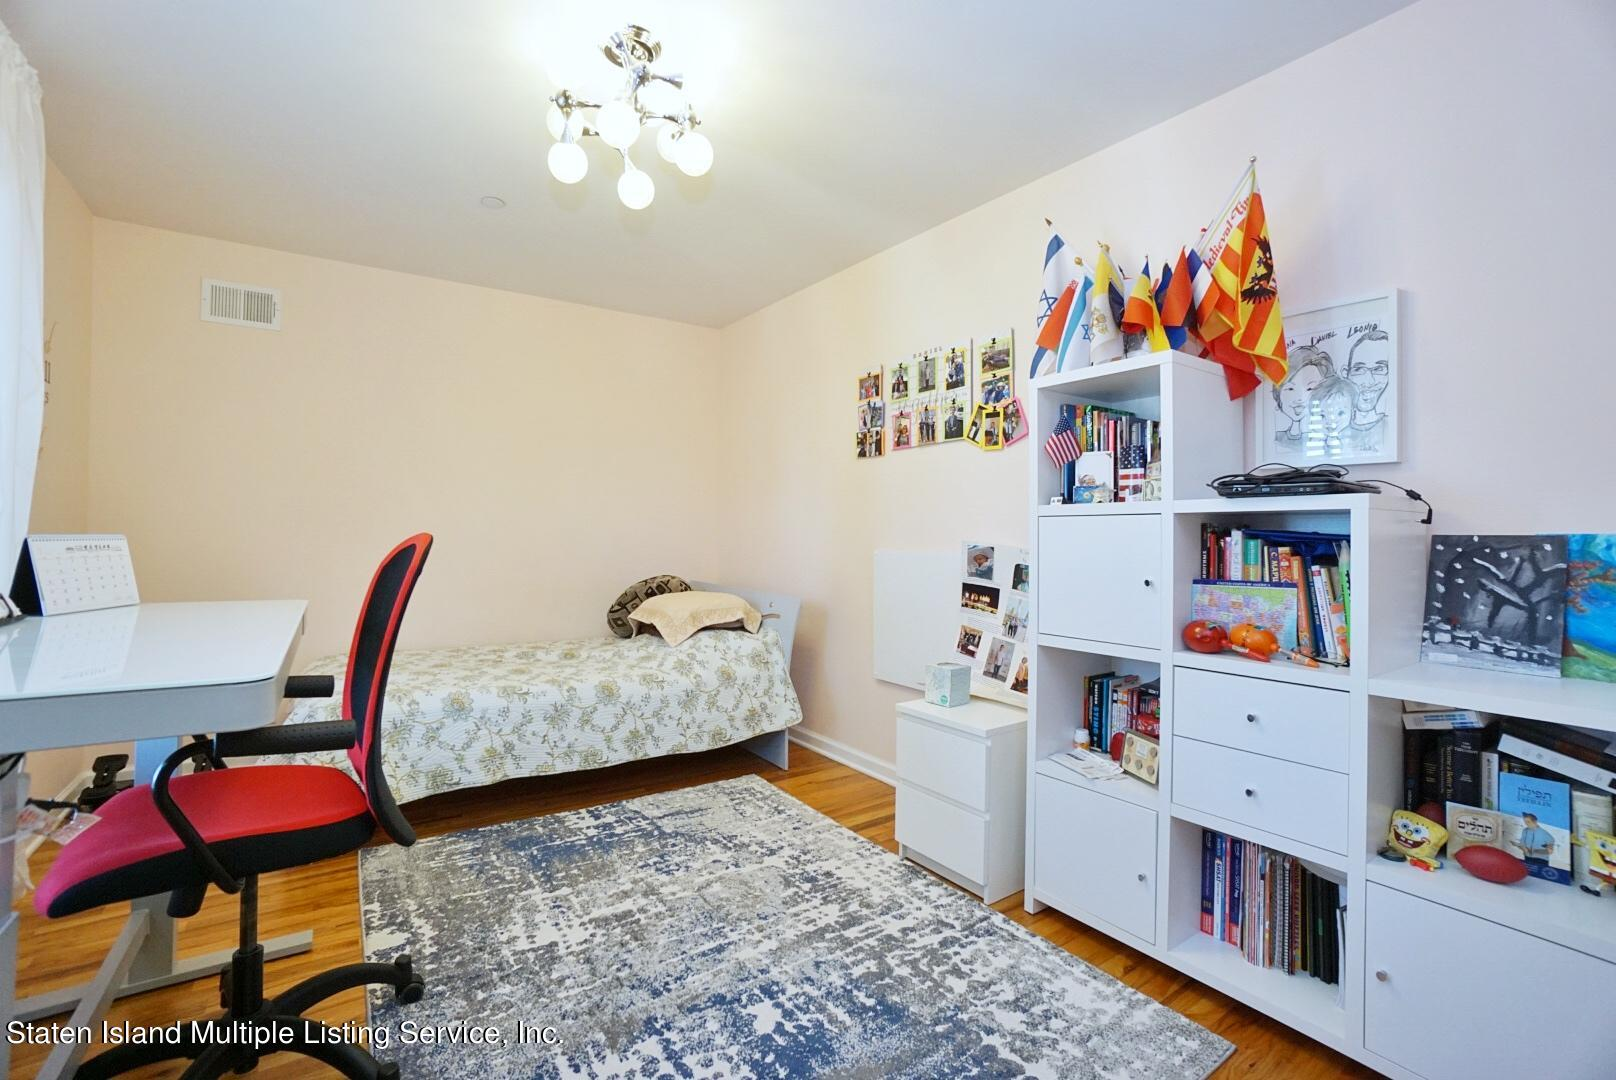 Single Family - Detached 171 Benziger Avenue  Staten Island, NY 10301, MLS-1145235-26